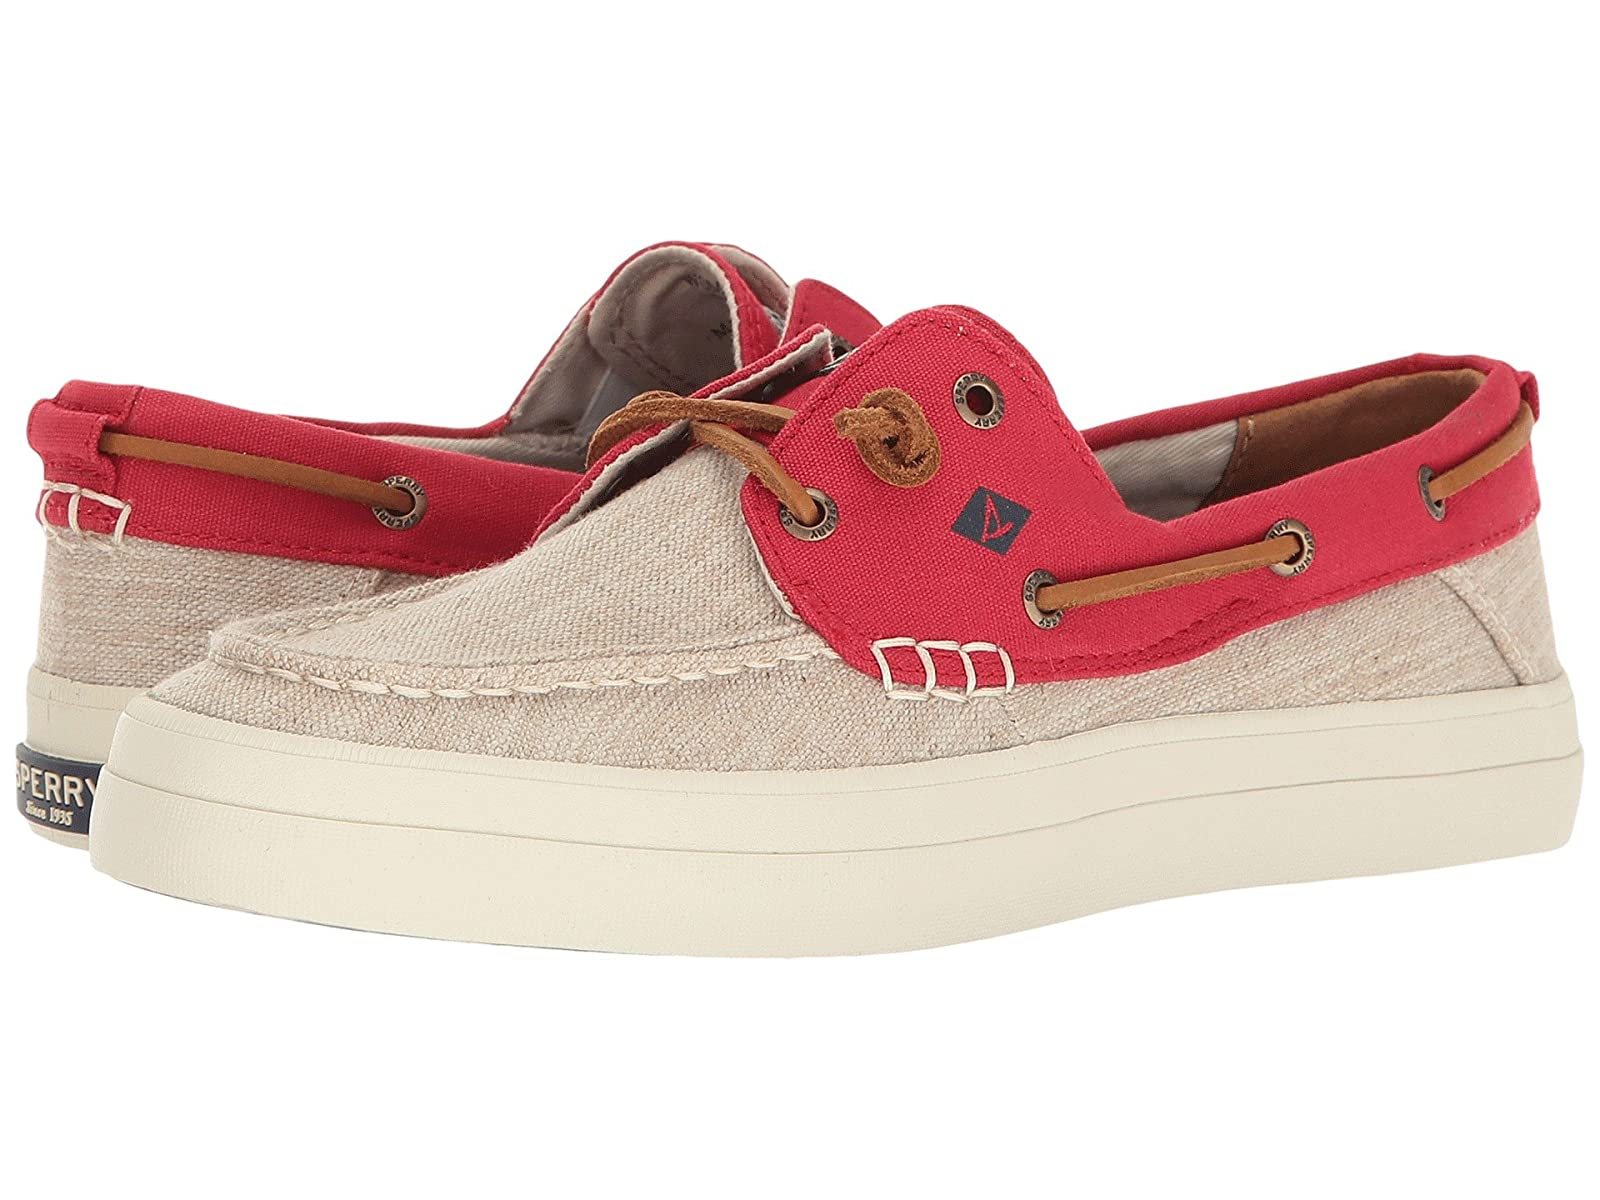 Sperry Crest Resort Canvas Two-ToneSelling fashionable and eye-catching shoes